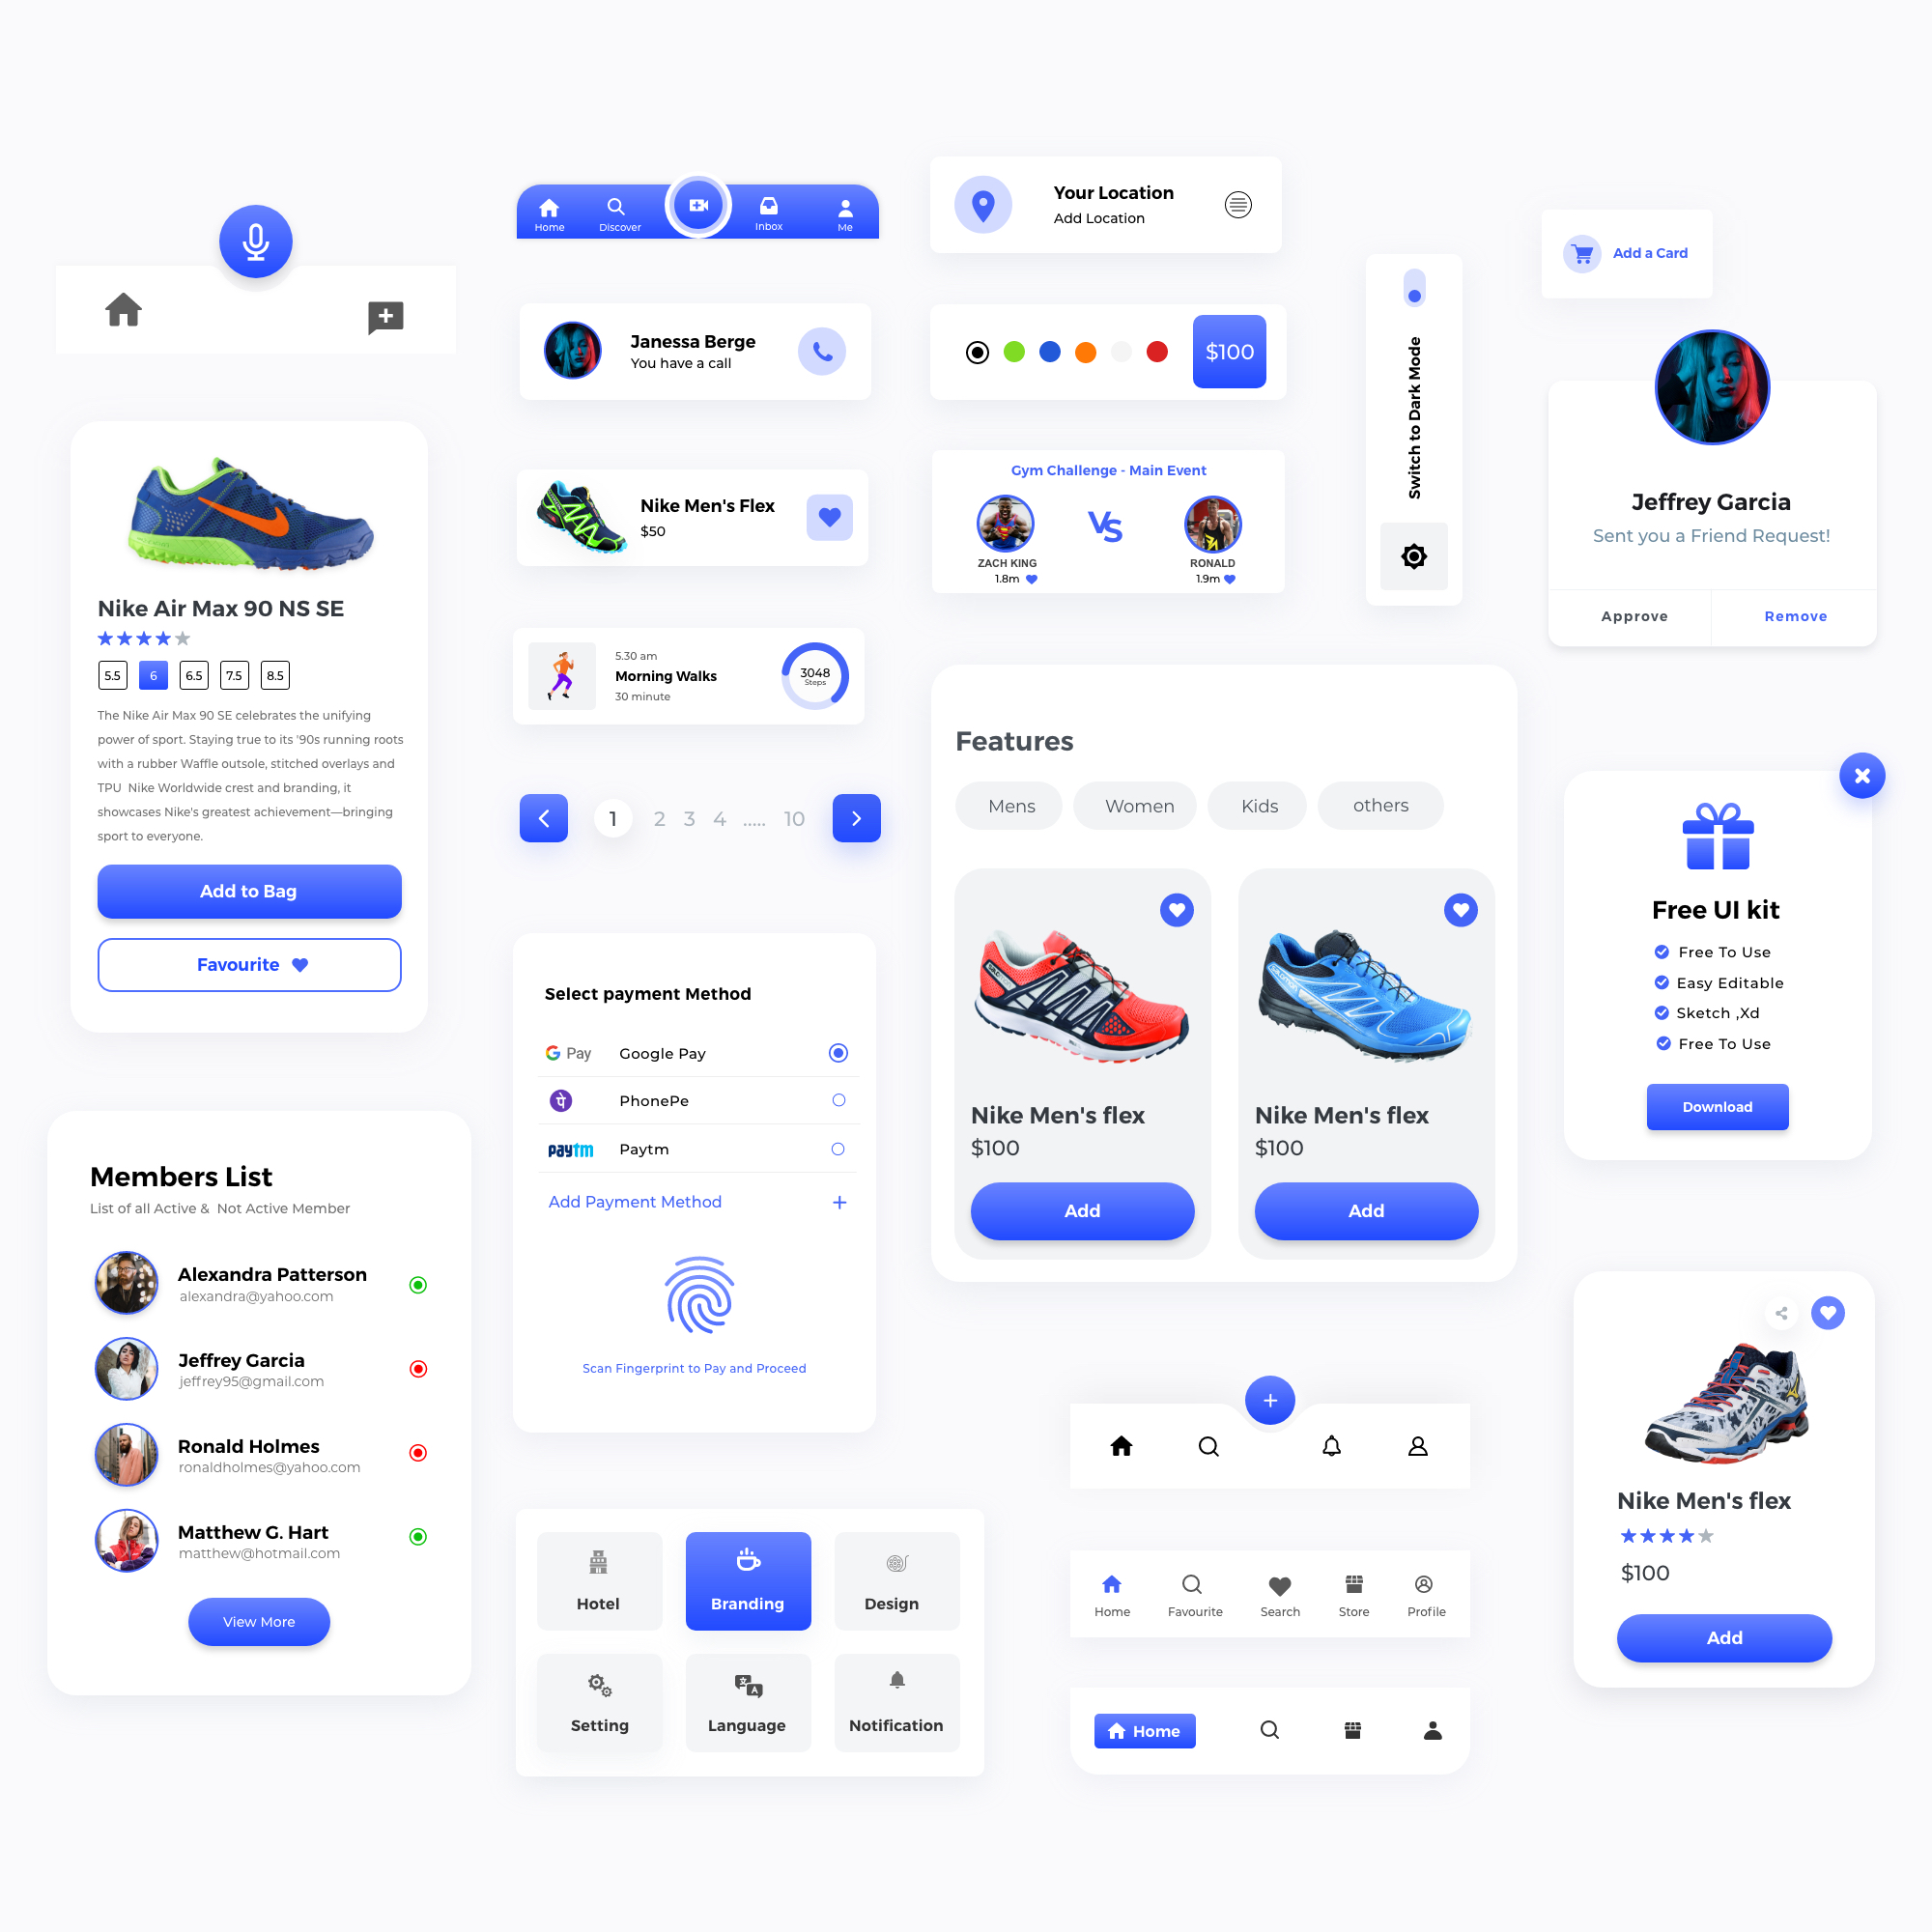 Components Free UI Kit for Adobe XD - Minimal and clean UI Kit design, 22+ components for you to get started.